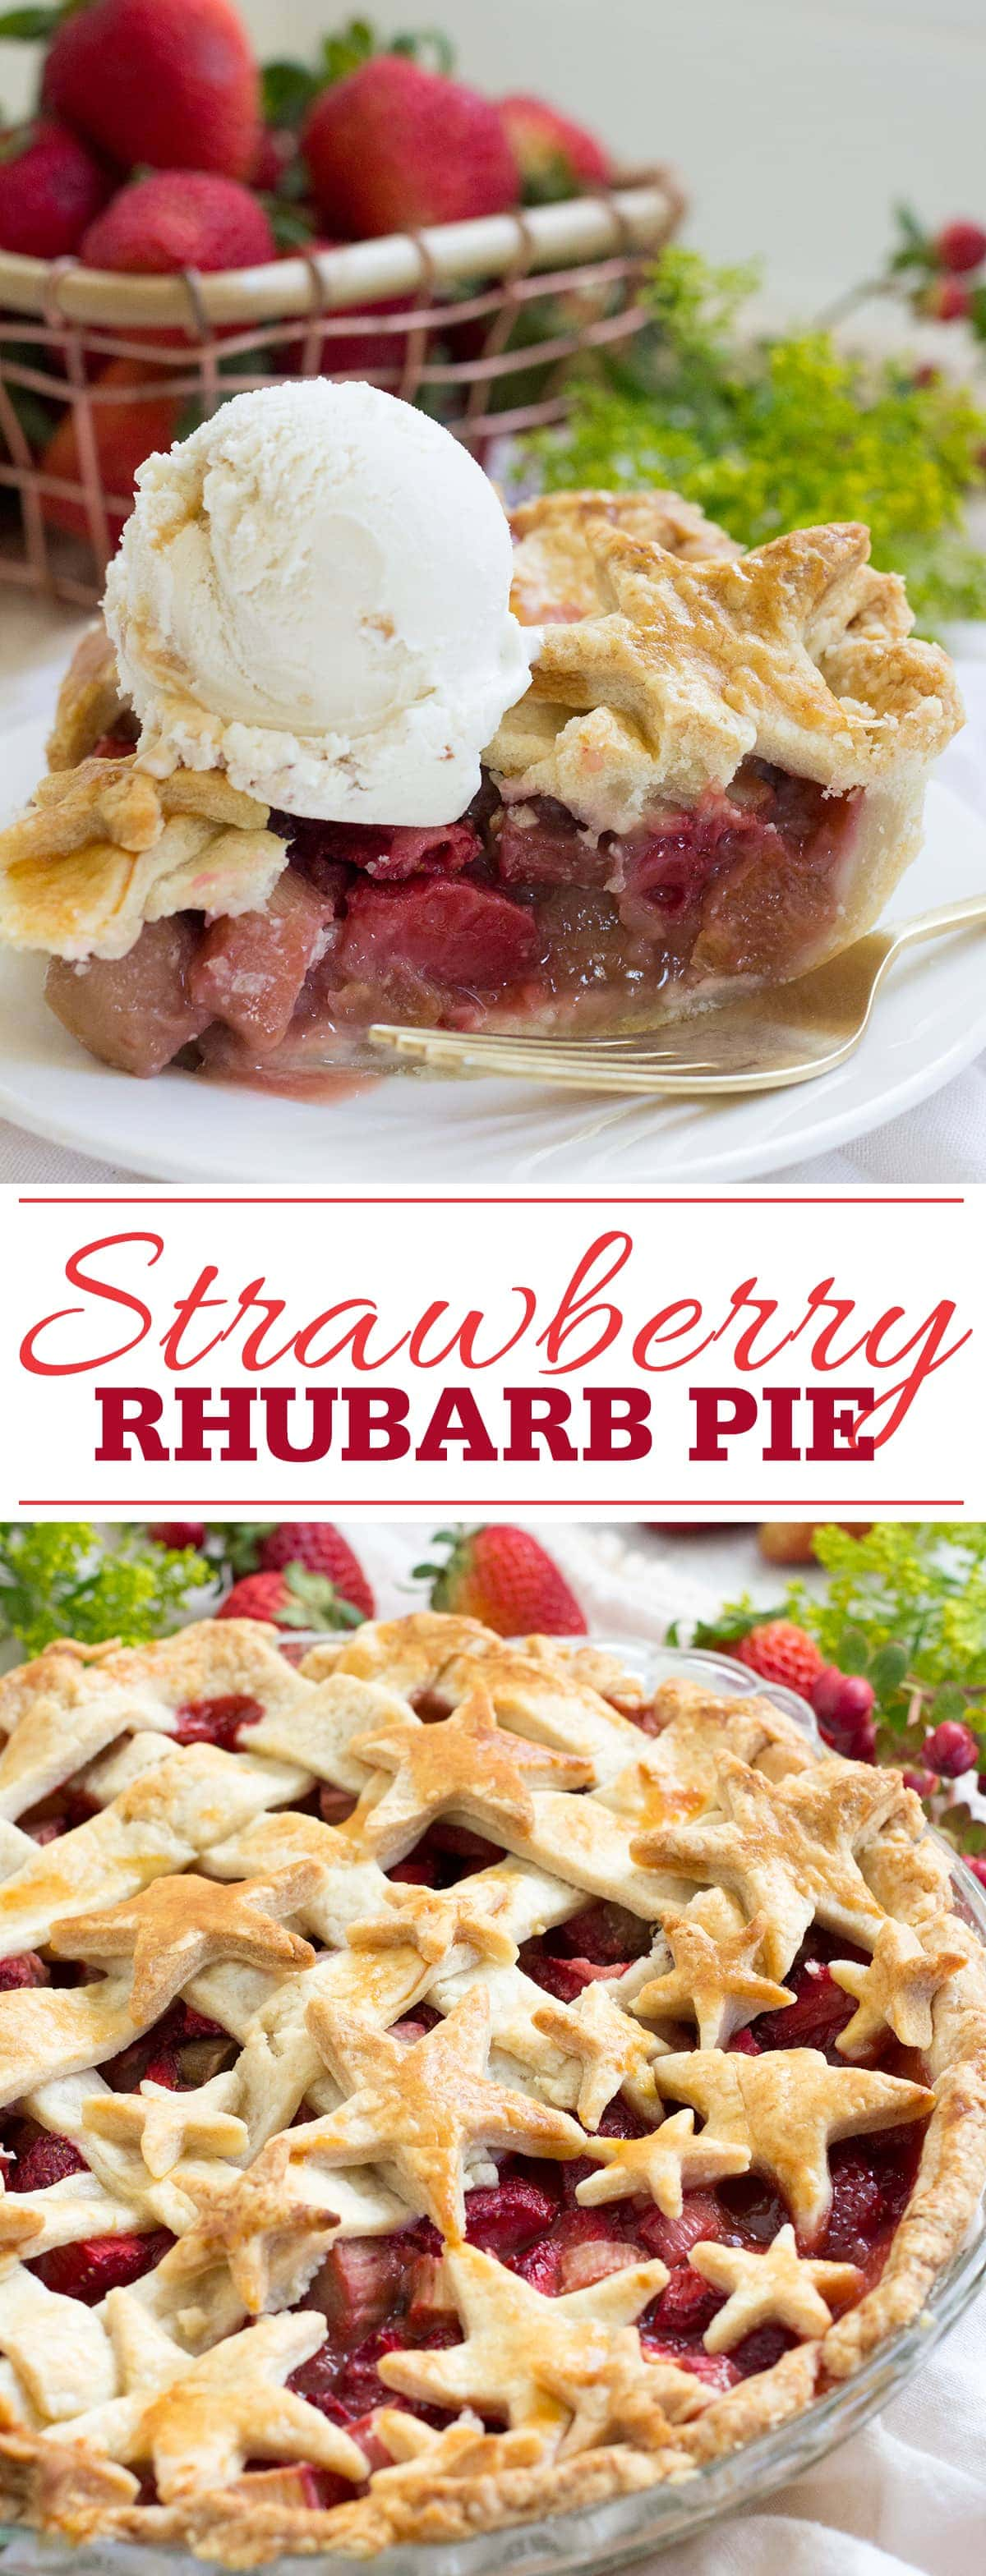 Strawberry Rhubarb Pie Pinterest